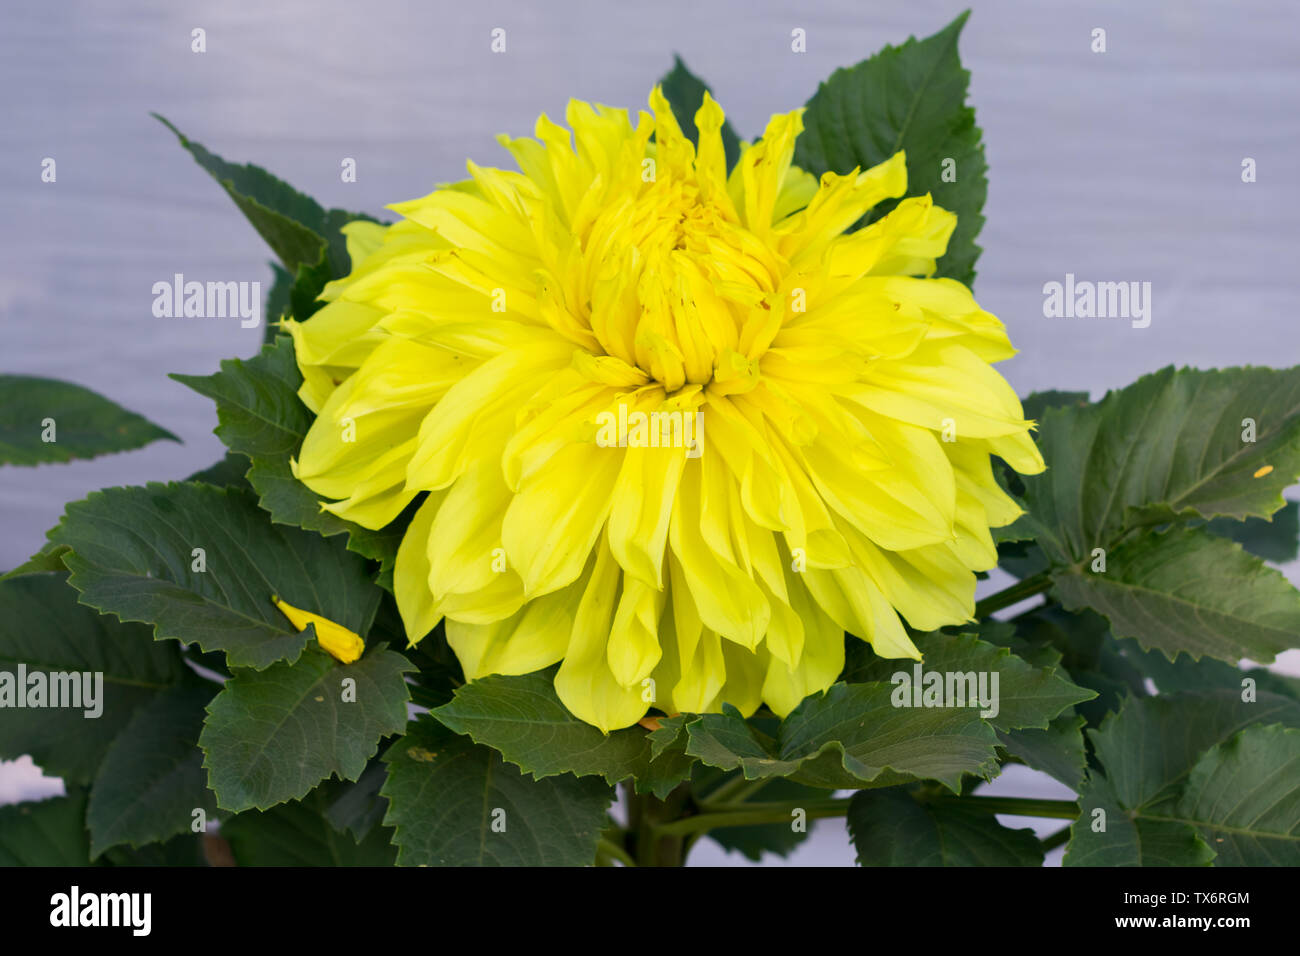 Yellow Guldavari Flower plant, a herbaceous perennial plants. It is a sun loving plant Blooms in early spring to late summer. A very popular flower fo - Stock Image